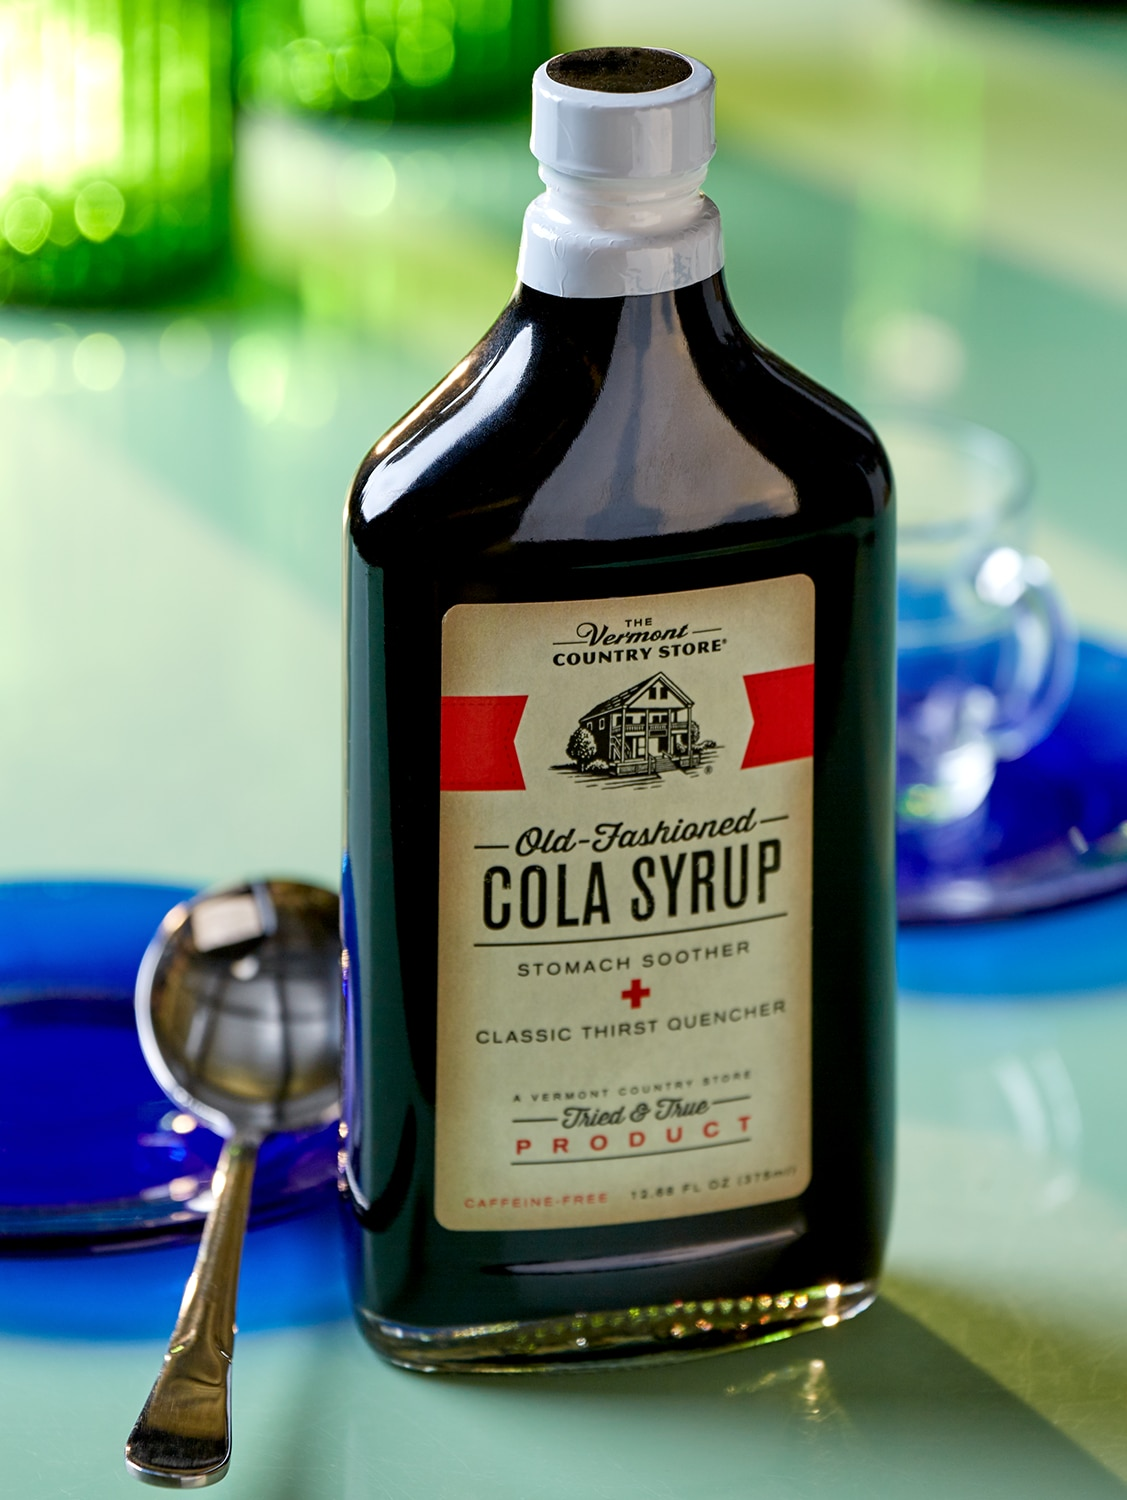 Pure Cola Syrup